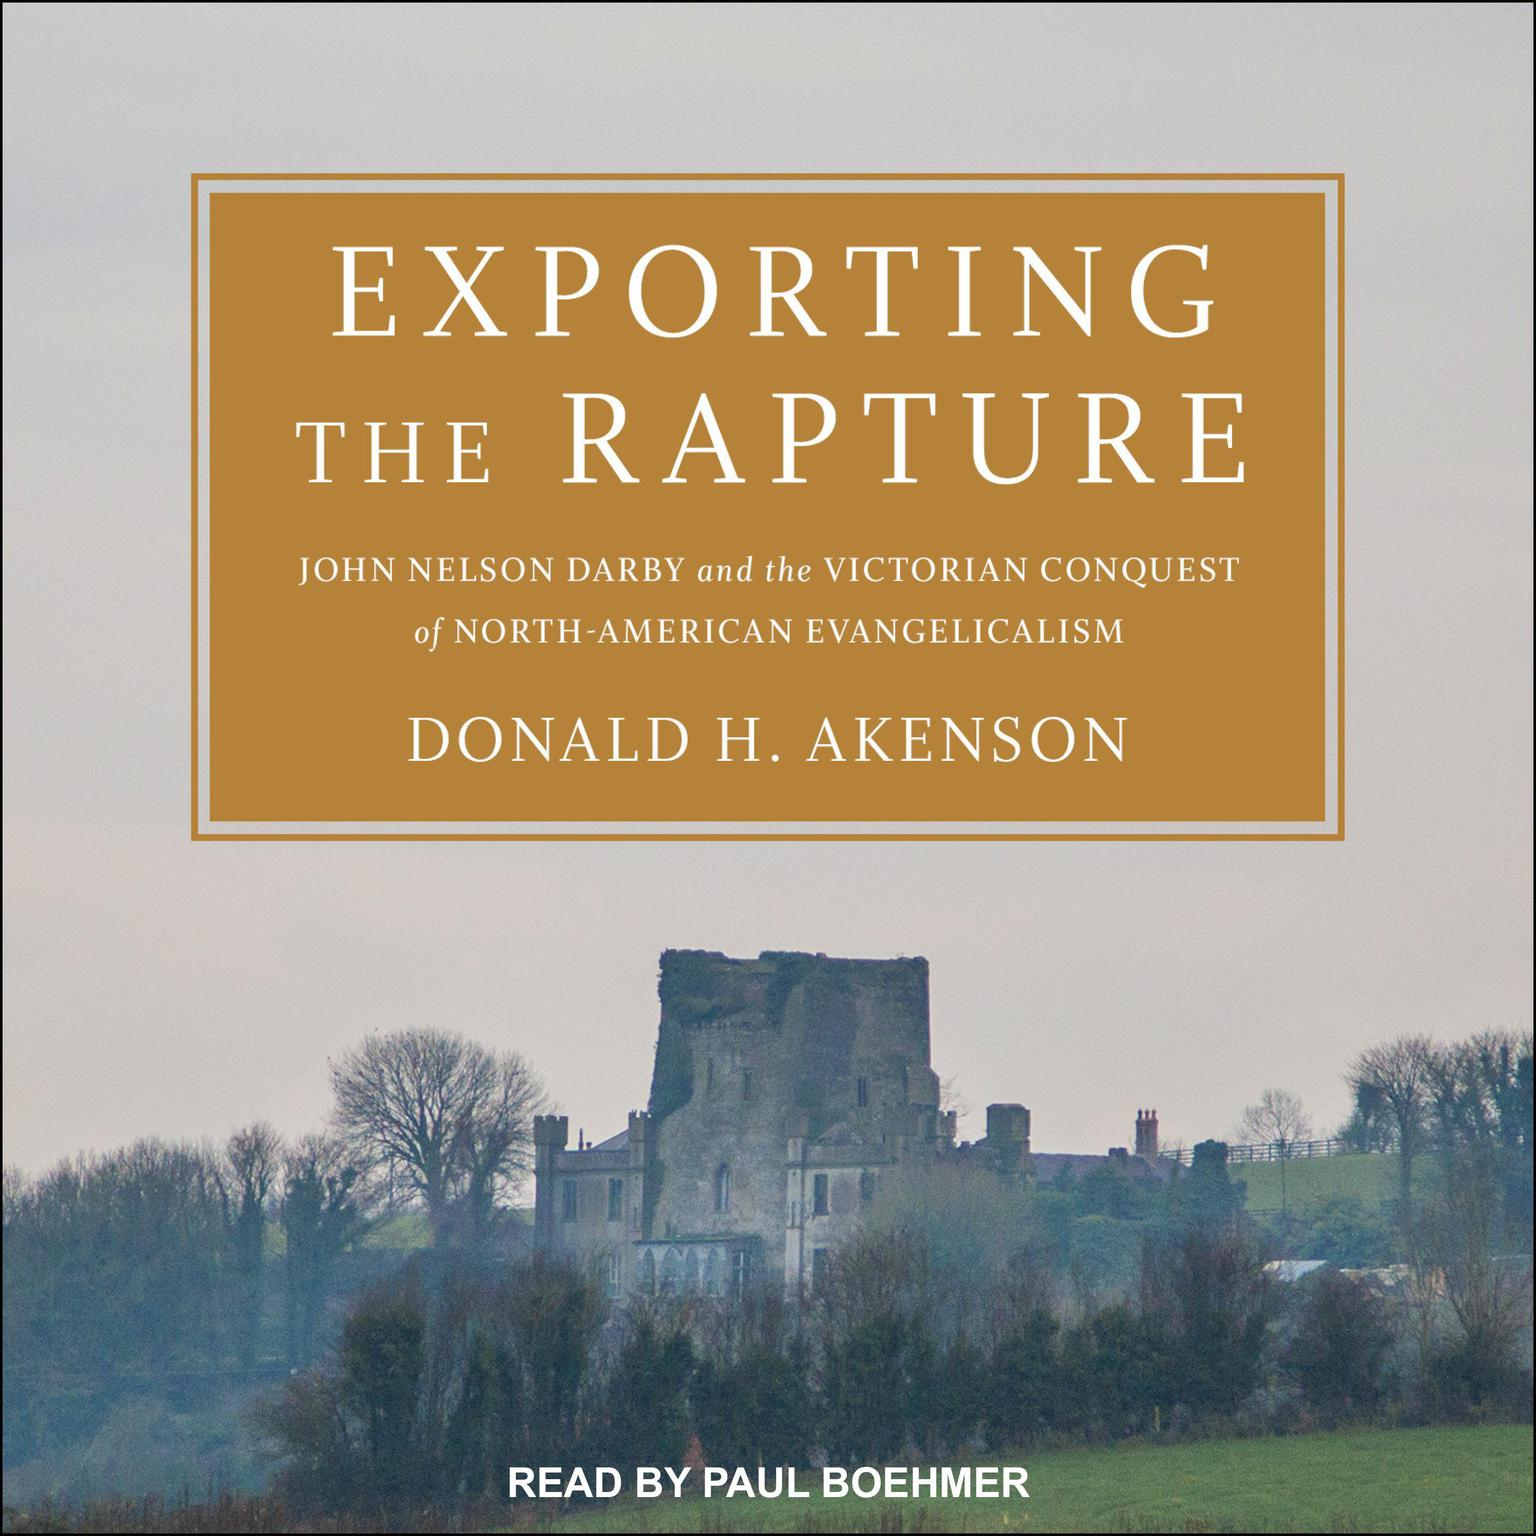 Printable Exporting the Rapture: John Nelson Darby and the Victorian Conquest of North-American Evangelicalism Audiobook Cover Art